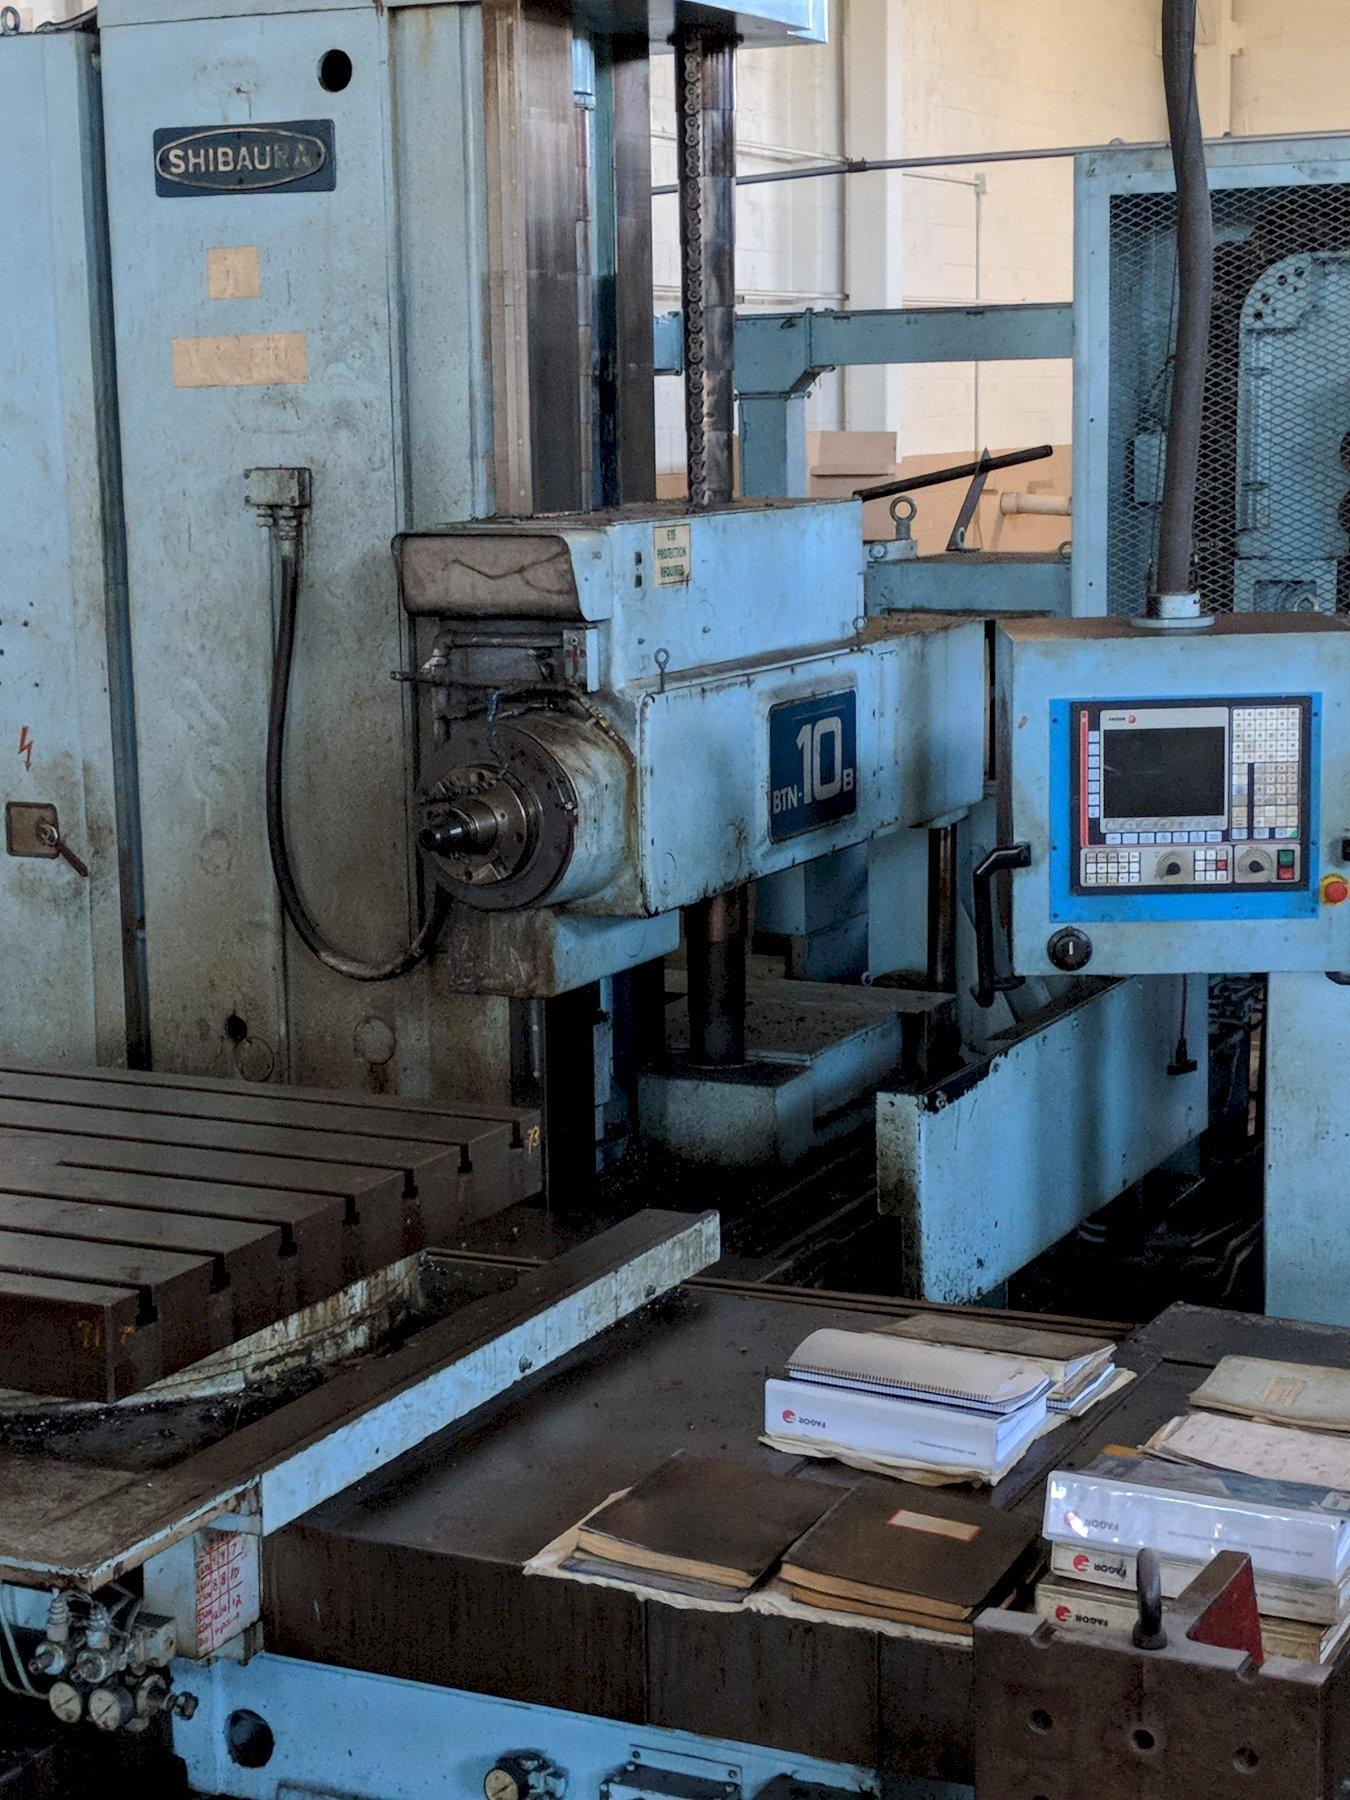 Toshiba Shibaura BTN-10B CNC Table Type Horizontal Boring Mill with 2012 Retrofit Fagor 8055i CNC Control and non operating 80 position toolchanger